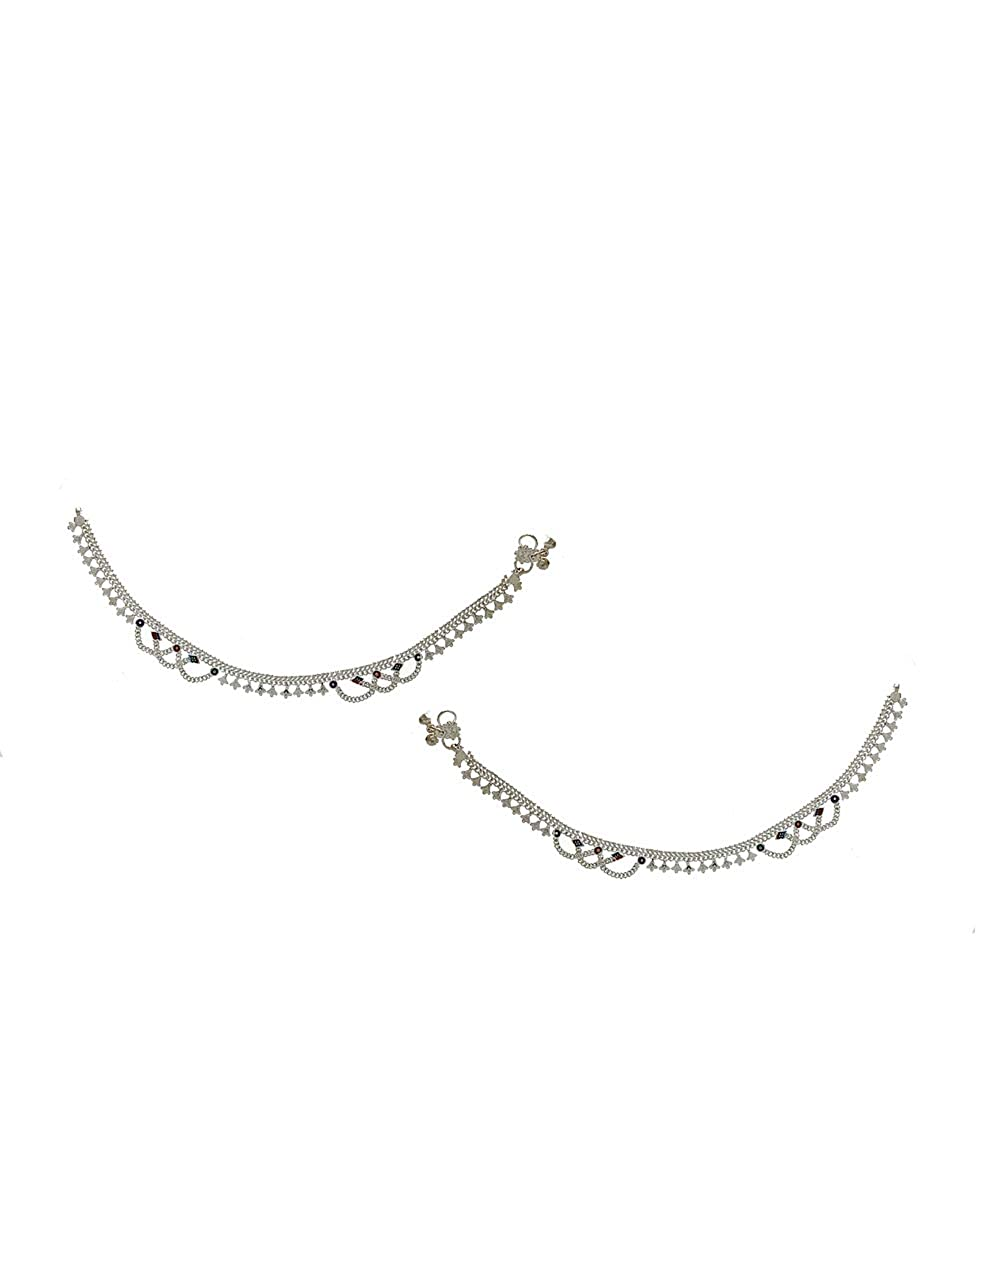 Anuradha Art Silver Colour Very Stylish Wonderful Desiger Anklets//Payal for Women//Girls